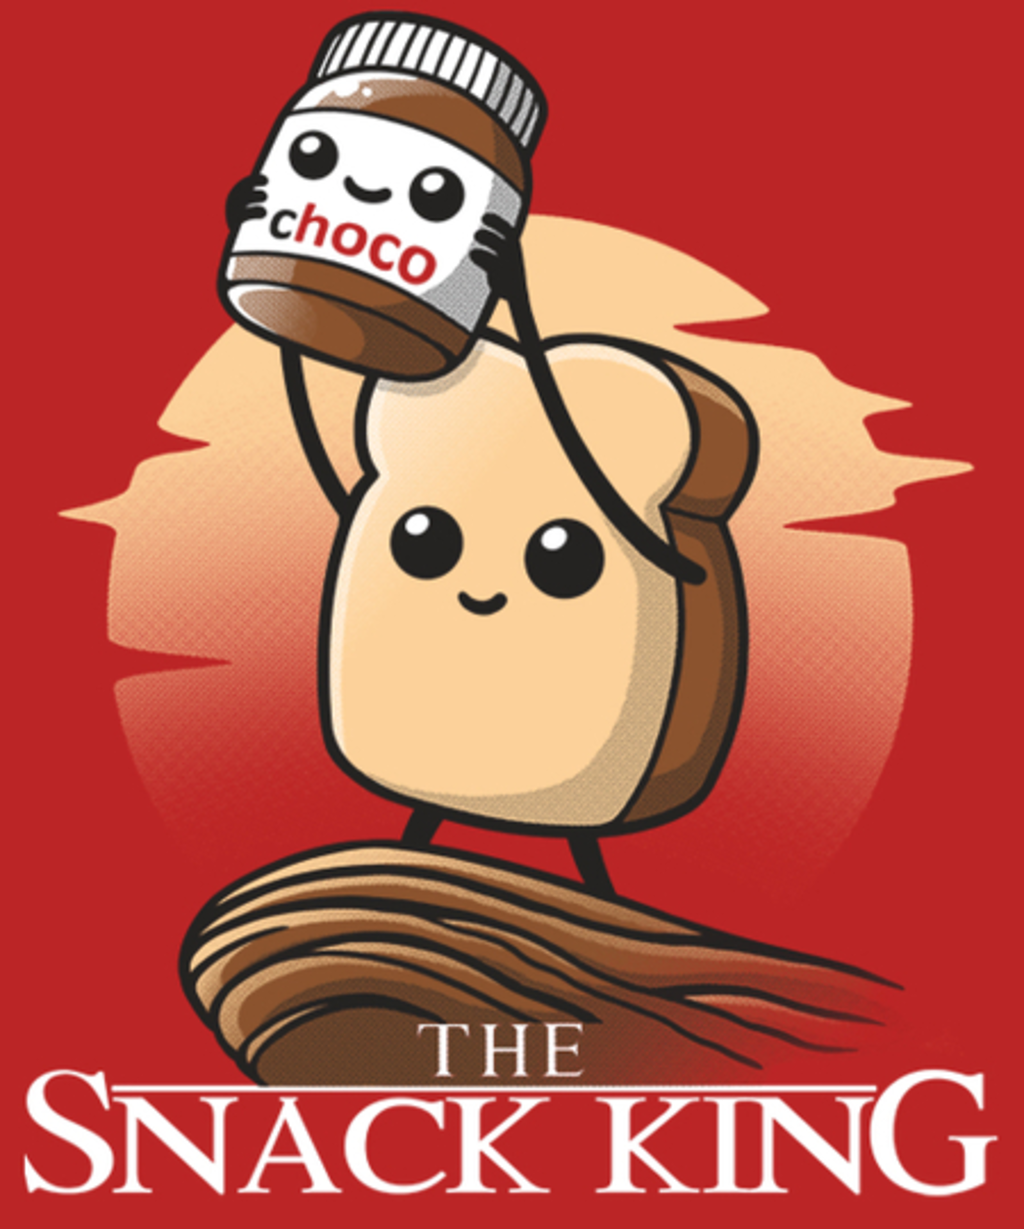 Qwertee: The snack king